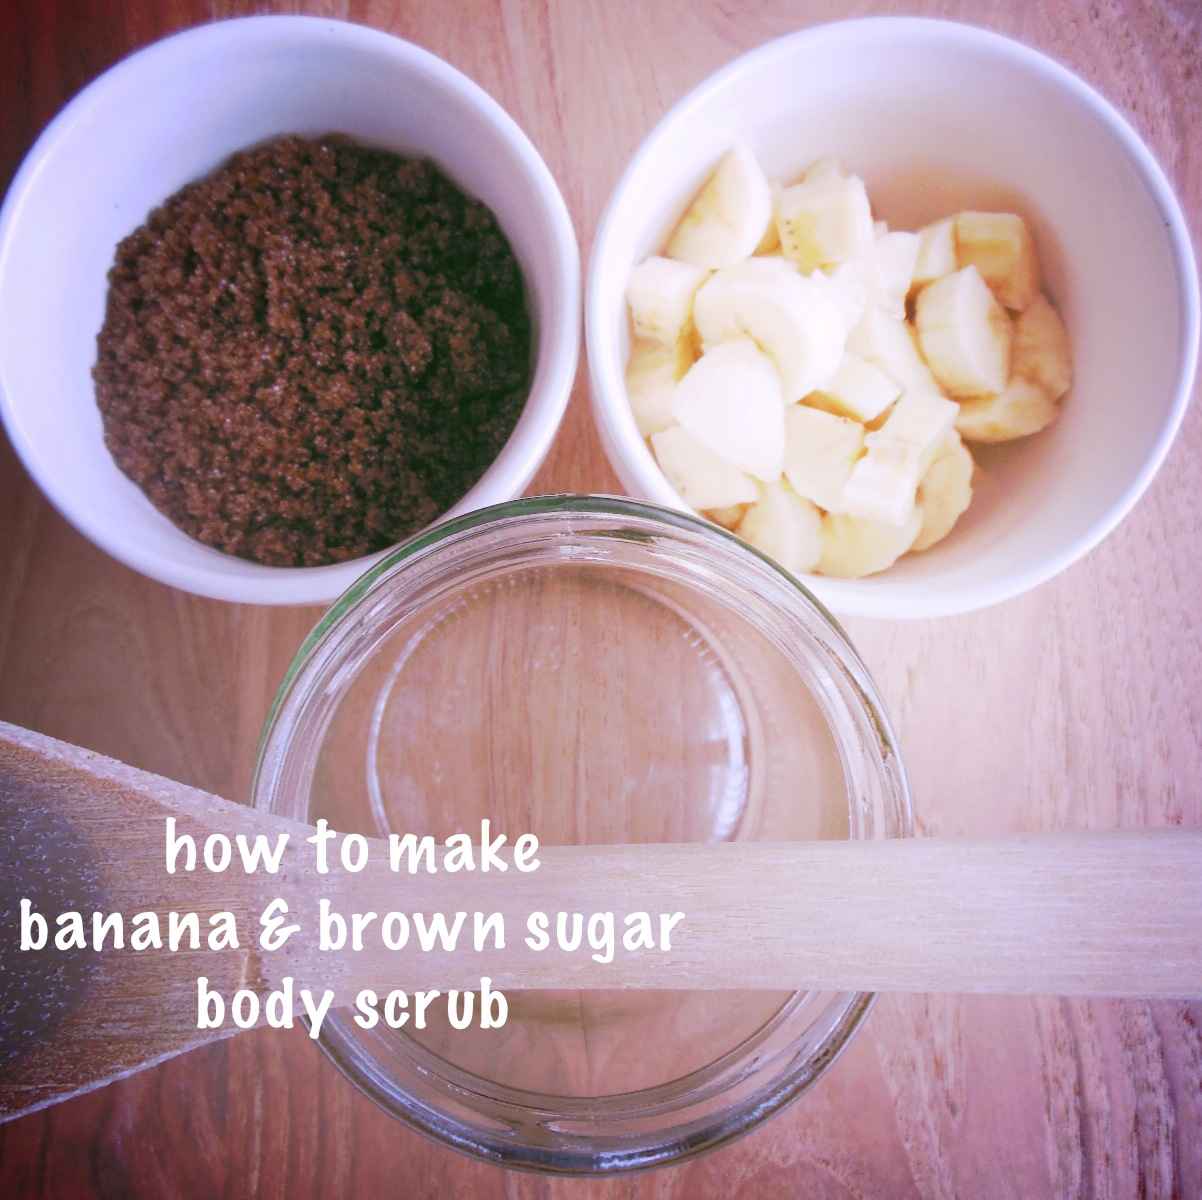 How to make banana and brown sugar body scrub